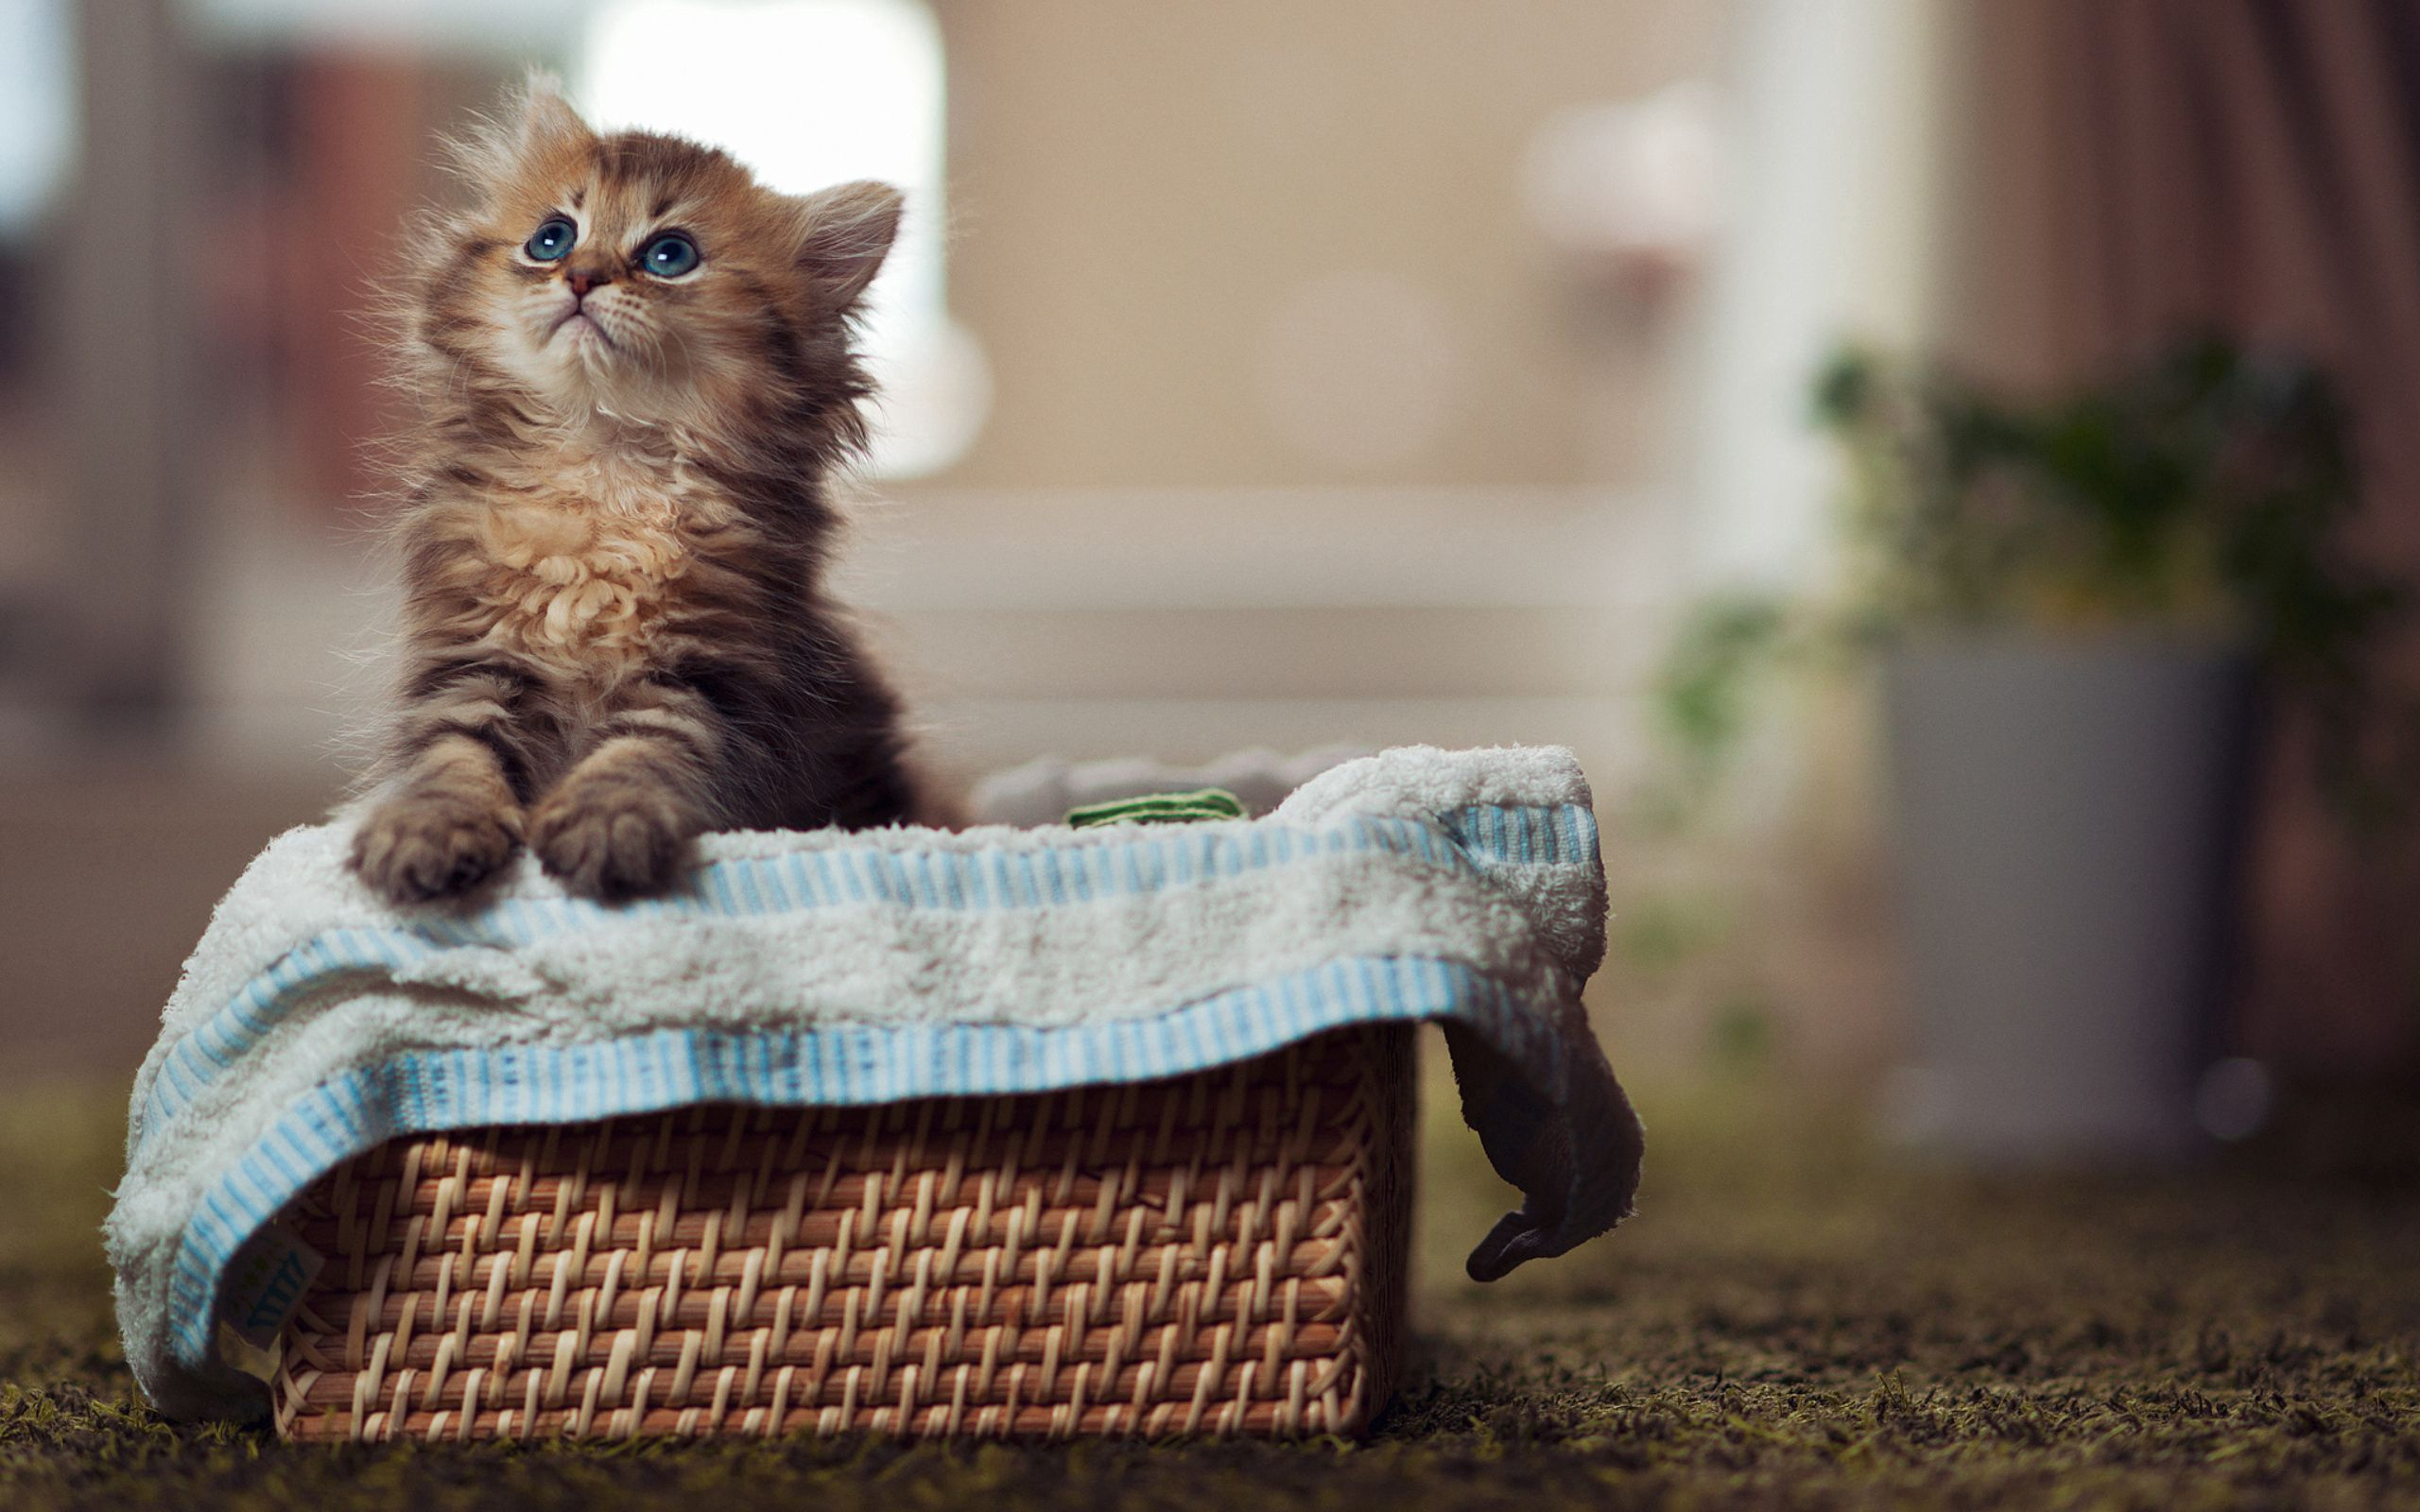 78255 Screensavers and Wallpapers Kitten for phone. Download Animals, Fluffy, Kitty, Kitten, Basket, Material, Curiosity, Look pictures for free